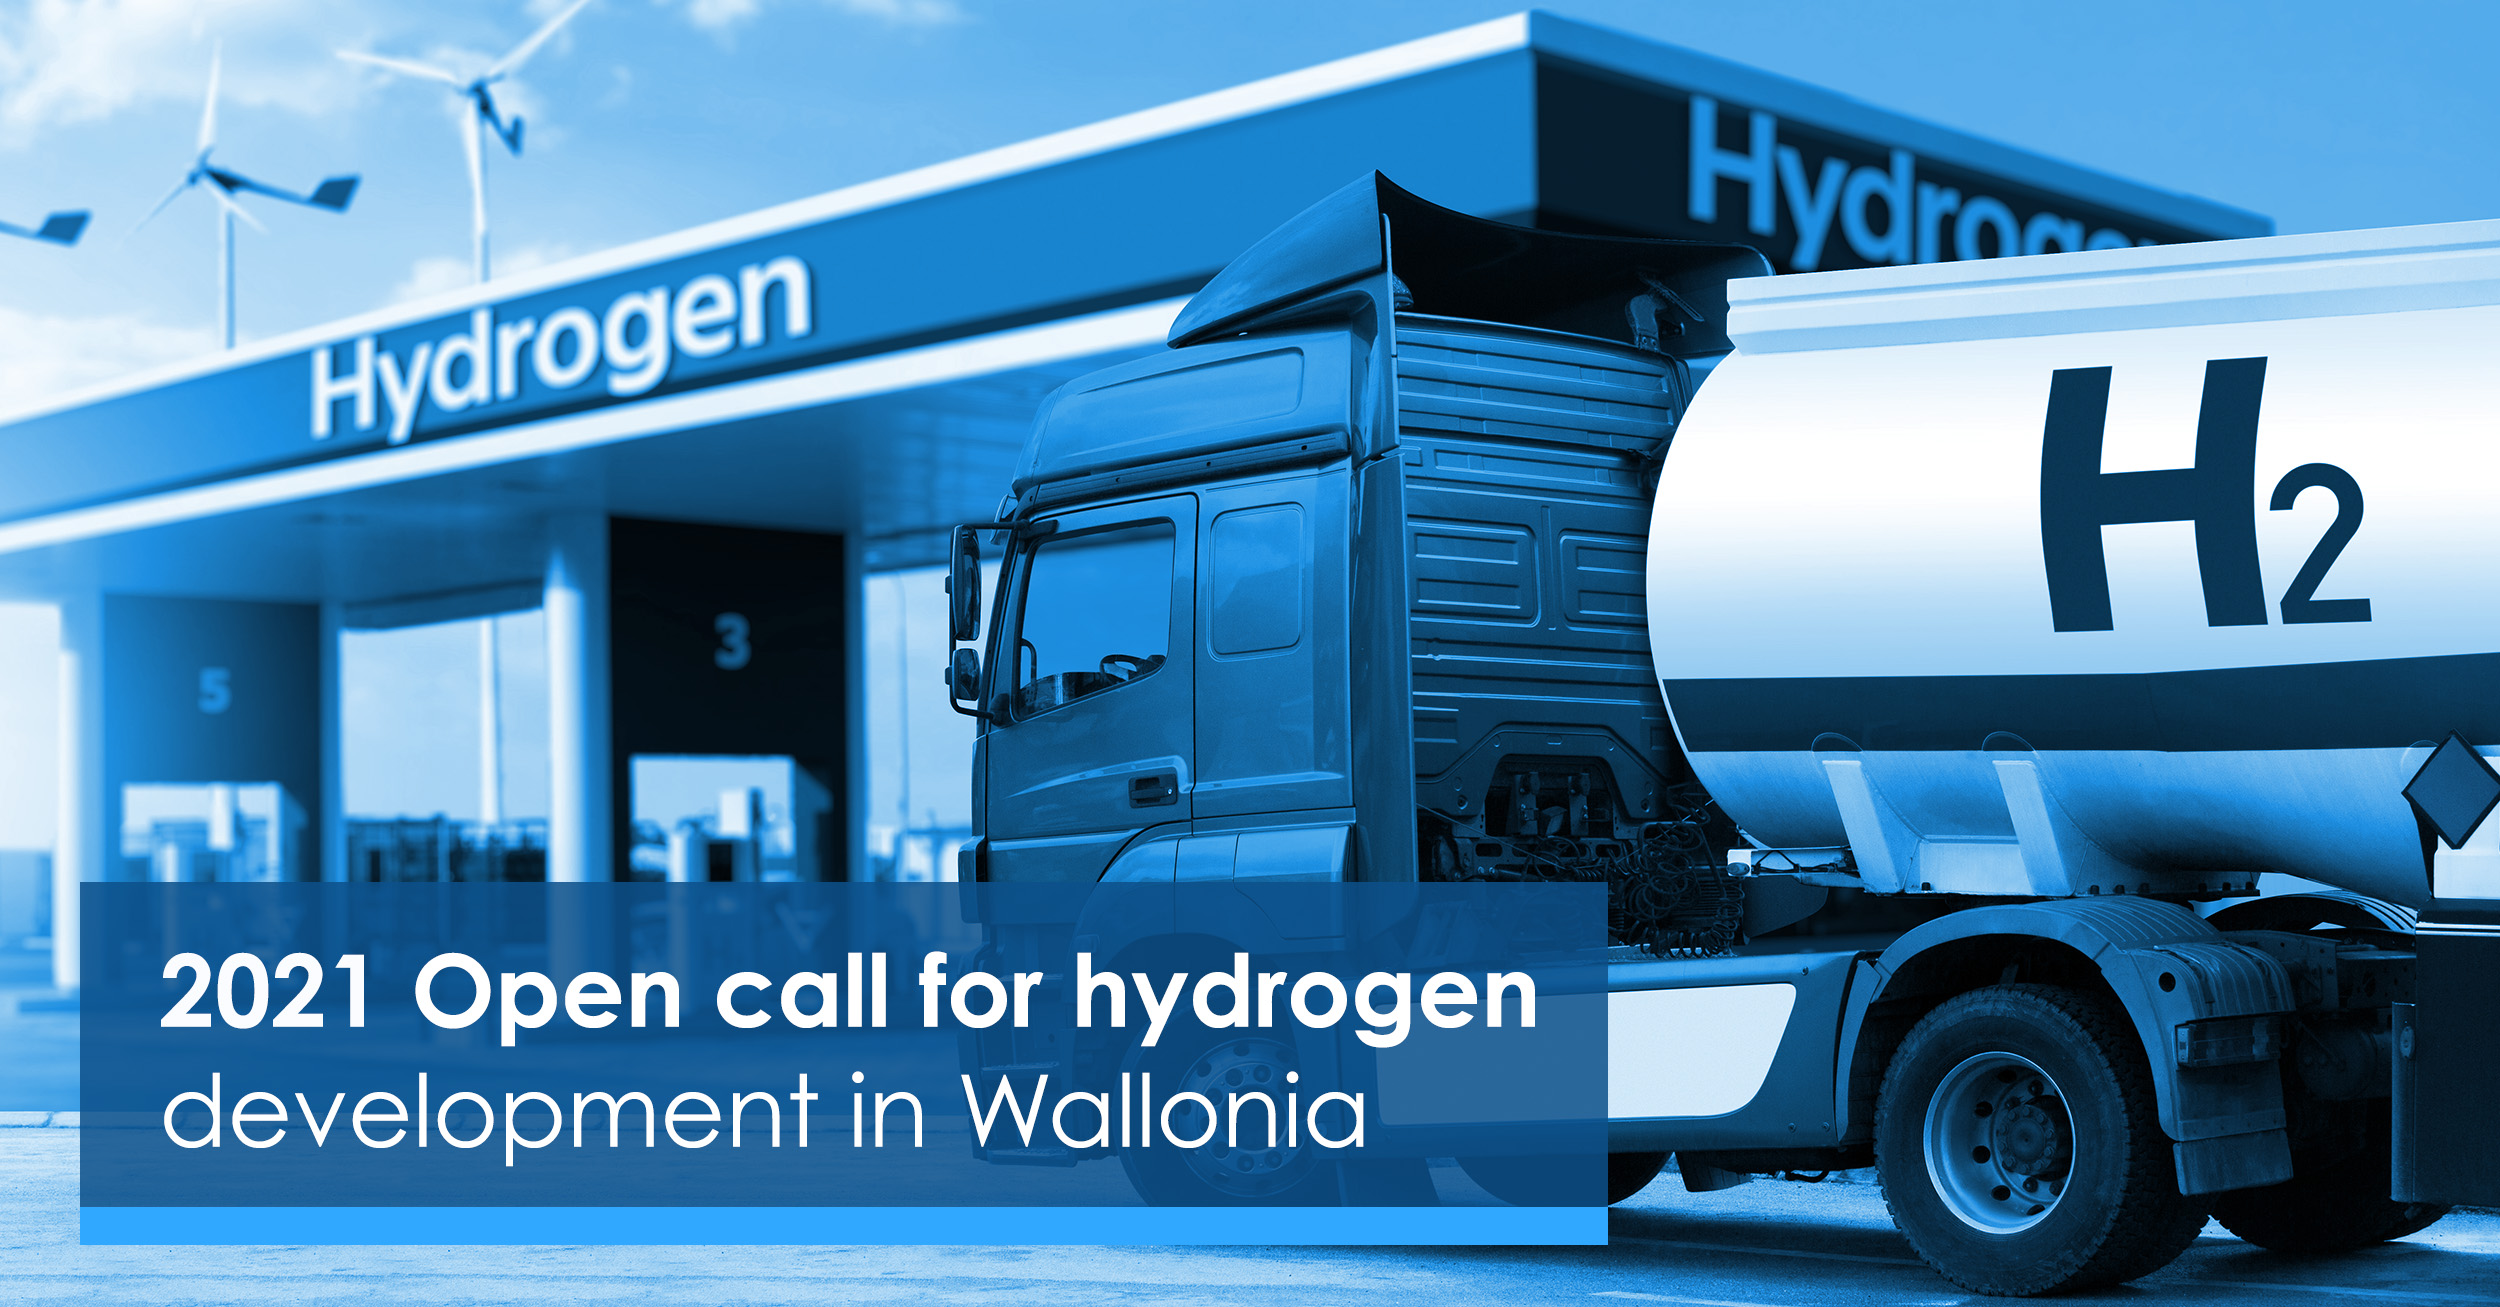 With A Budget Of 25 Million Euros, The Walloon Government Seeks To Implement New Solutions For Hydrogen Development